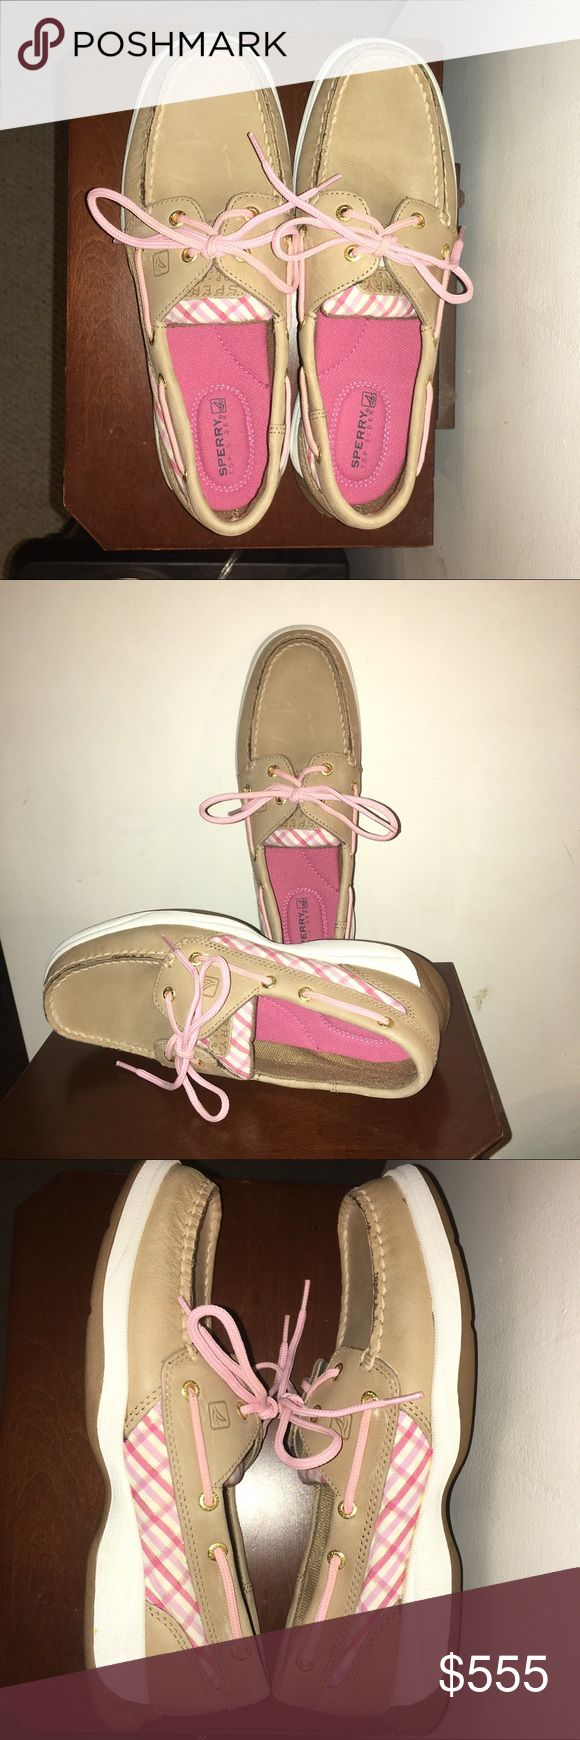 SALE 💝 SPERRYS 💝 Like New Light tan Sperrys with pink plaid accents on sides and tongue. Excellent like new condition. Pink footbed and pink shoestrings (not leather laces). Love them 💕 Just a little too short for me. Clean and smoke free. Bundle for additional discount. 🛍 Please, no lowballing. ⚠️ Sperry Top-Sider Shoes